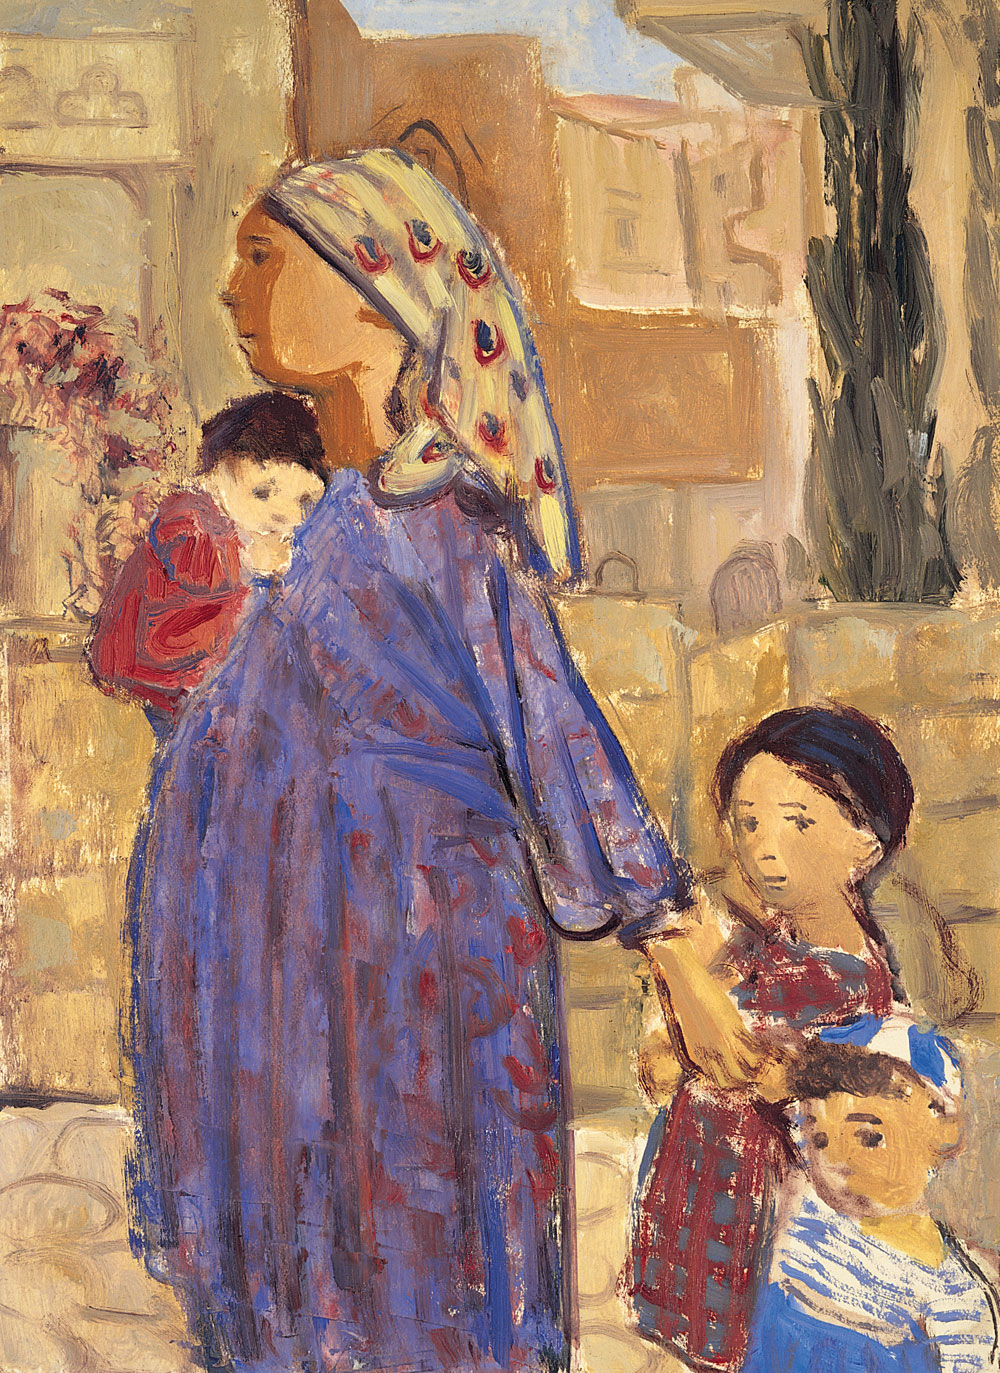 Woman with Three Children c. 1958